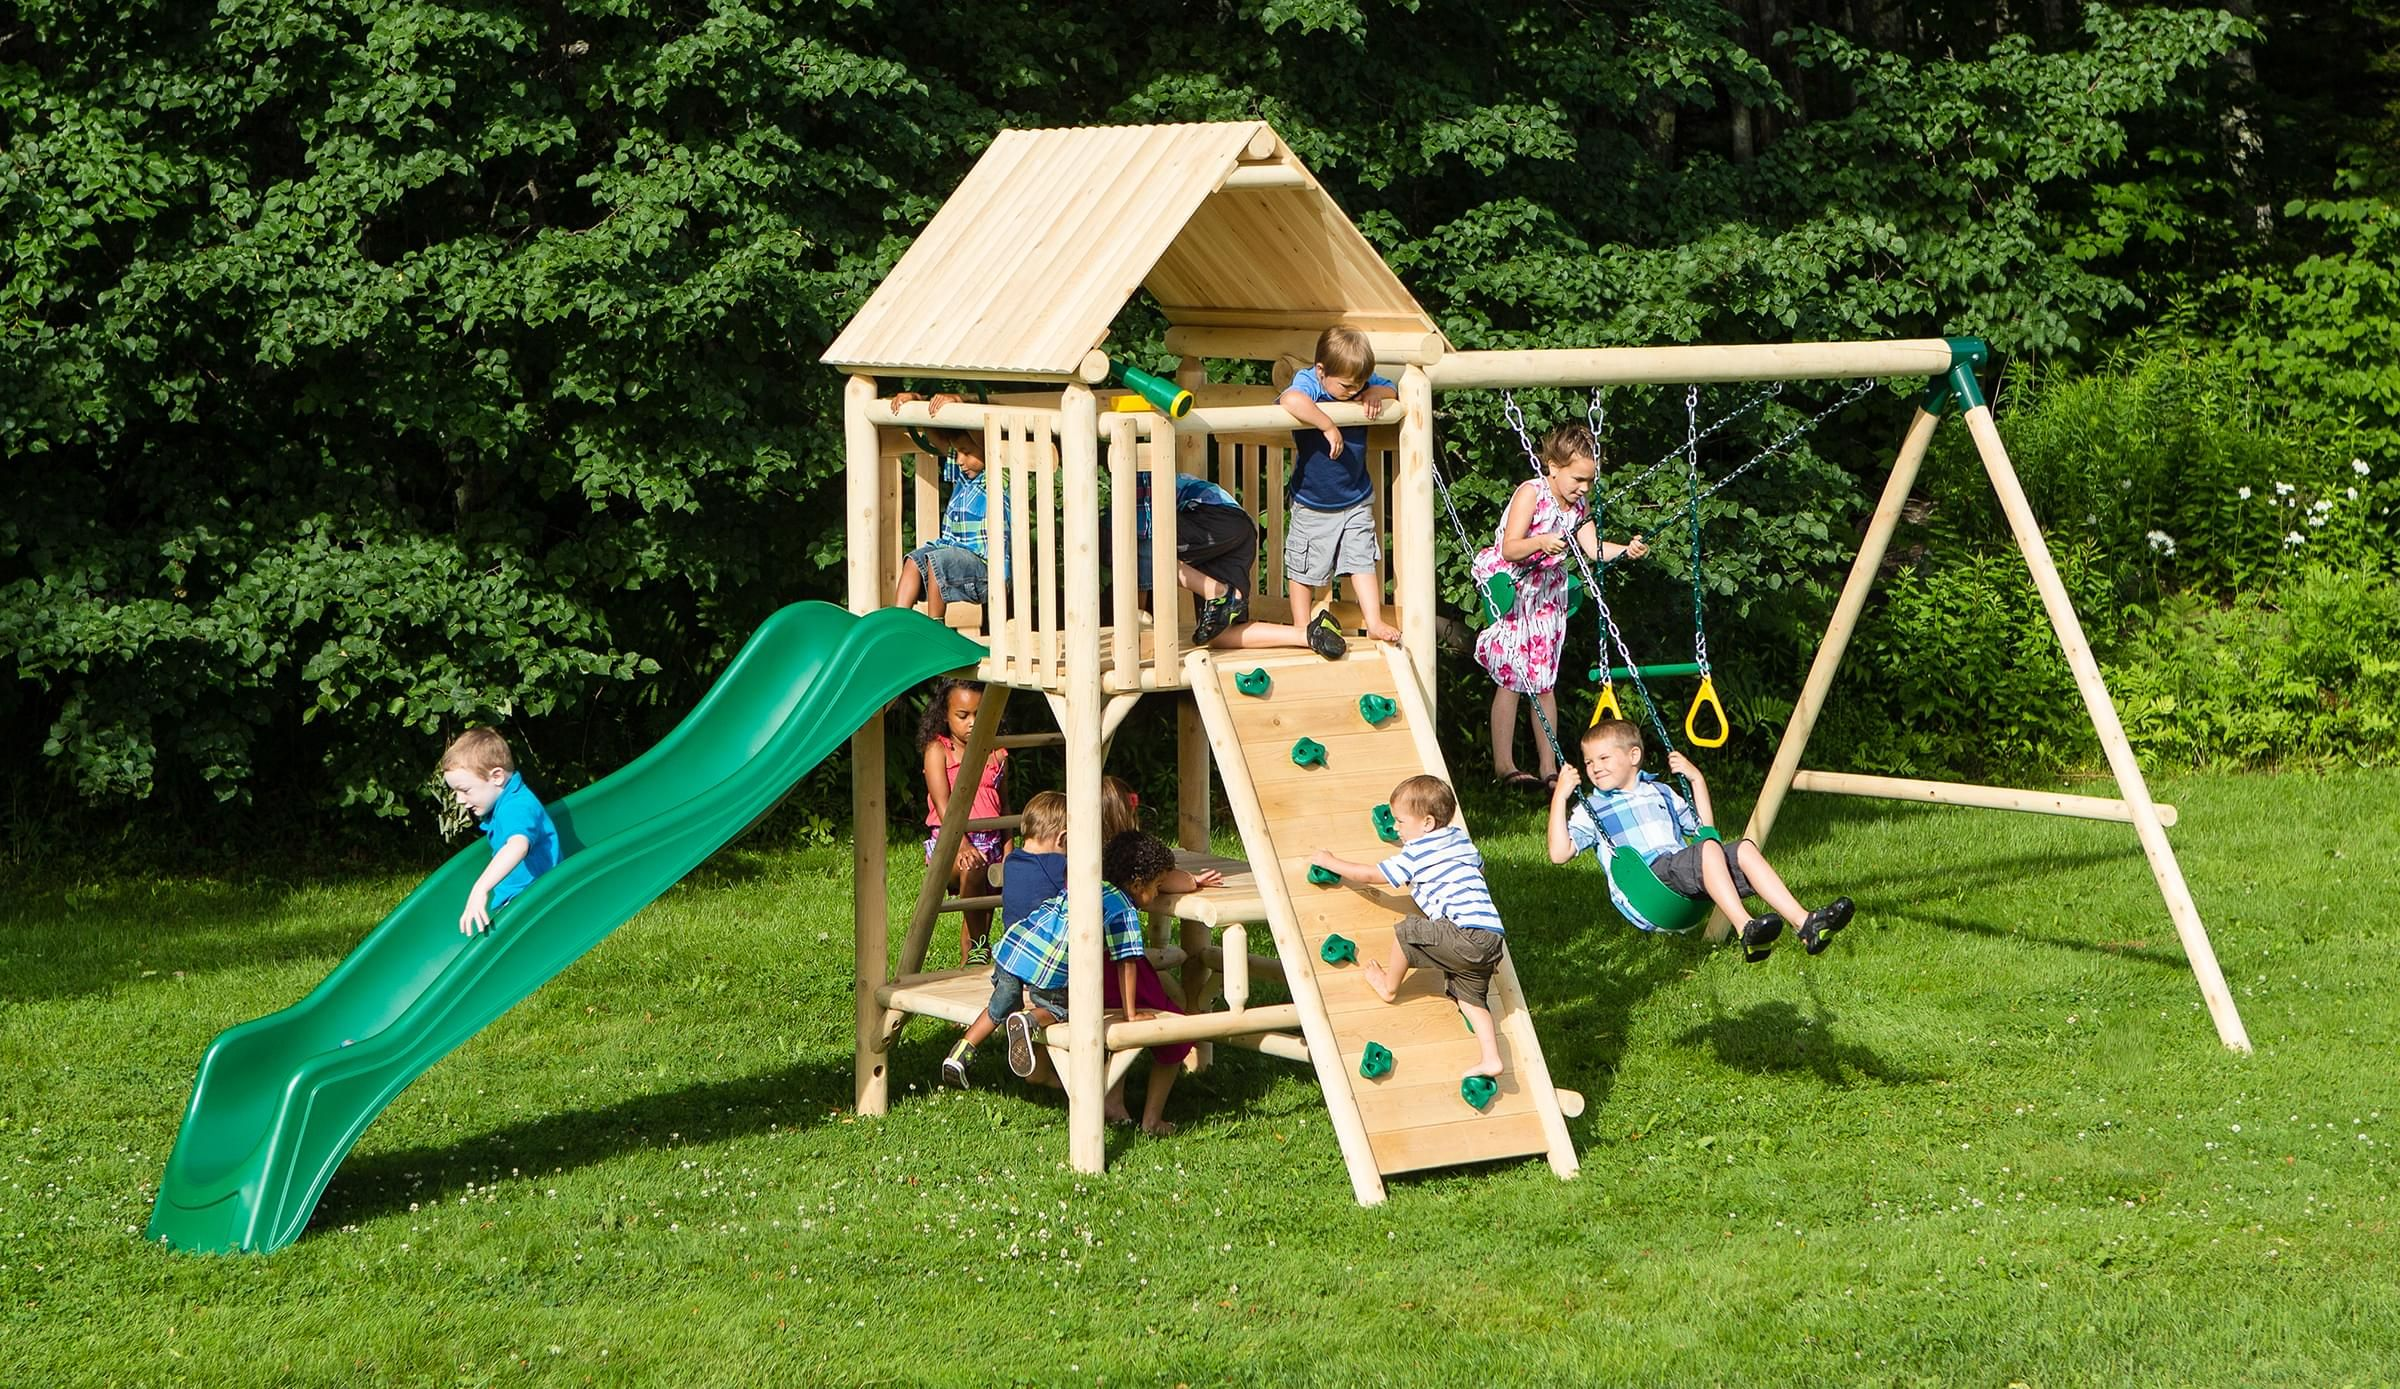 Play A Round Lookout Wood Swing Set And Outdoor Playset Cedarworks Playsets Playset Outdoor Swing Set Wooden Swing Set